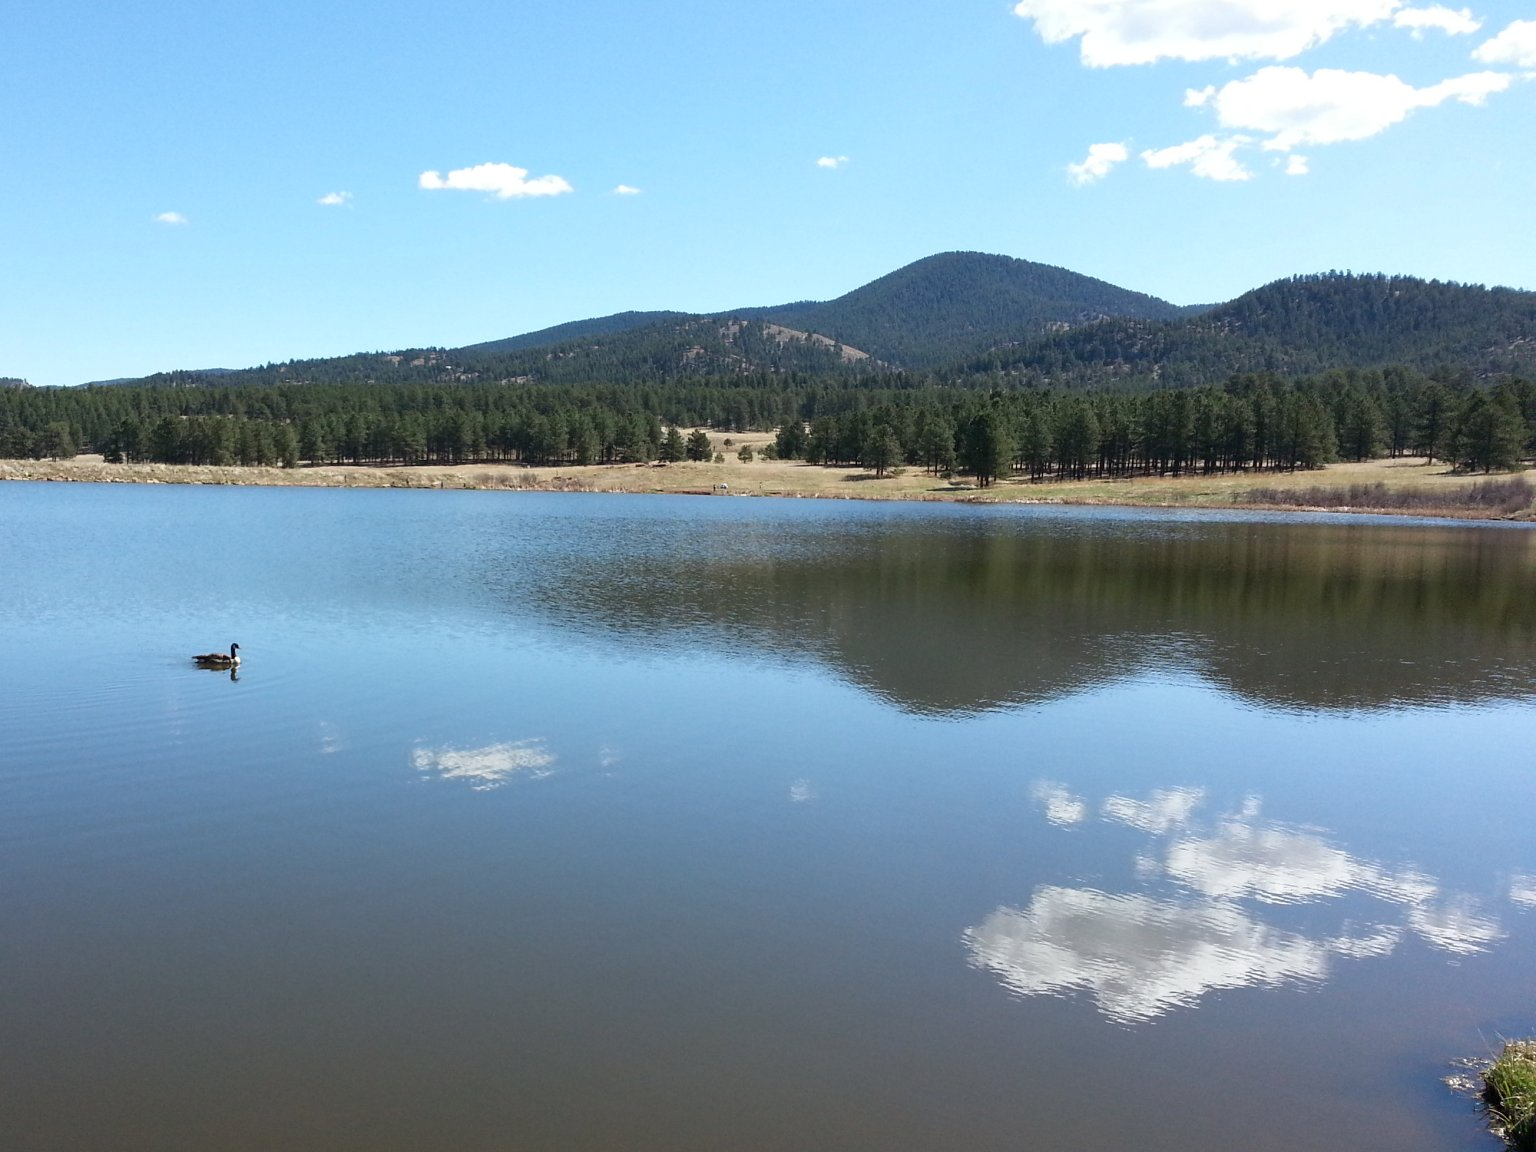 A view of Manitou Lake and a goose.